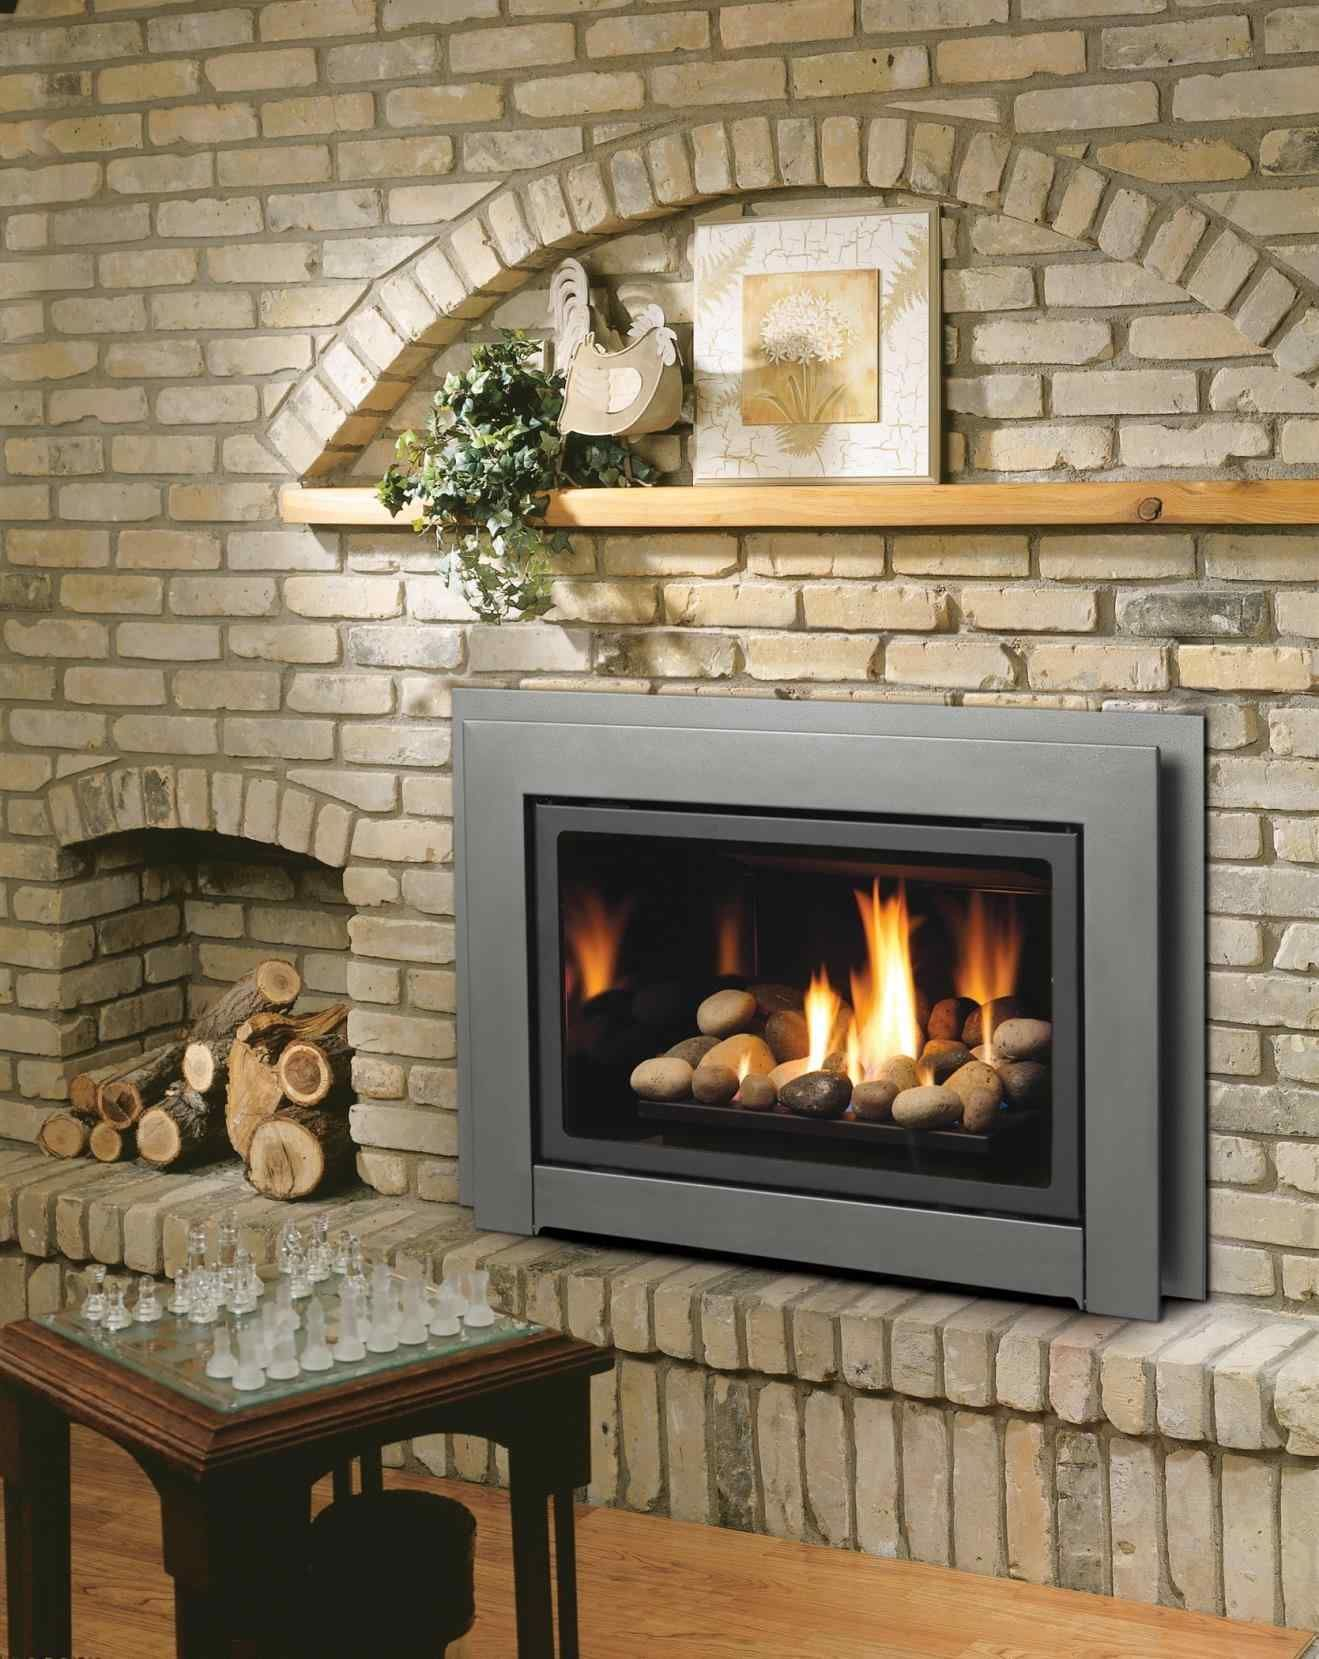 15 Best Fireplace Wood Storage Ideas To Prepare The Winter